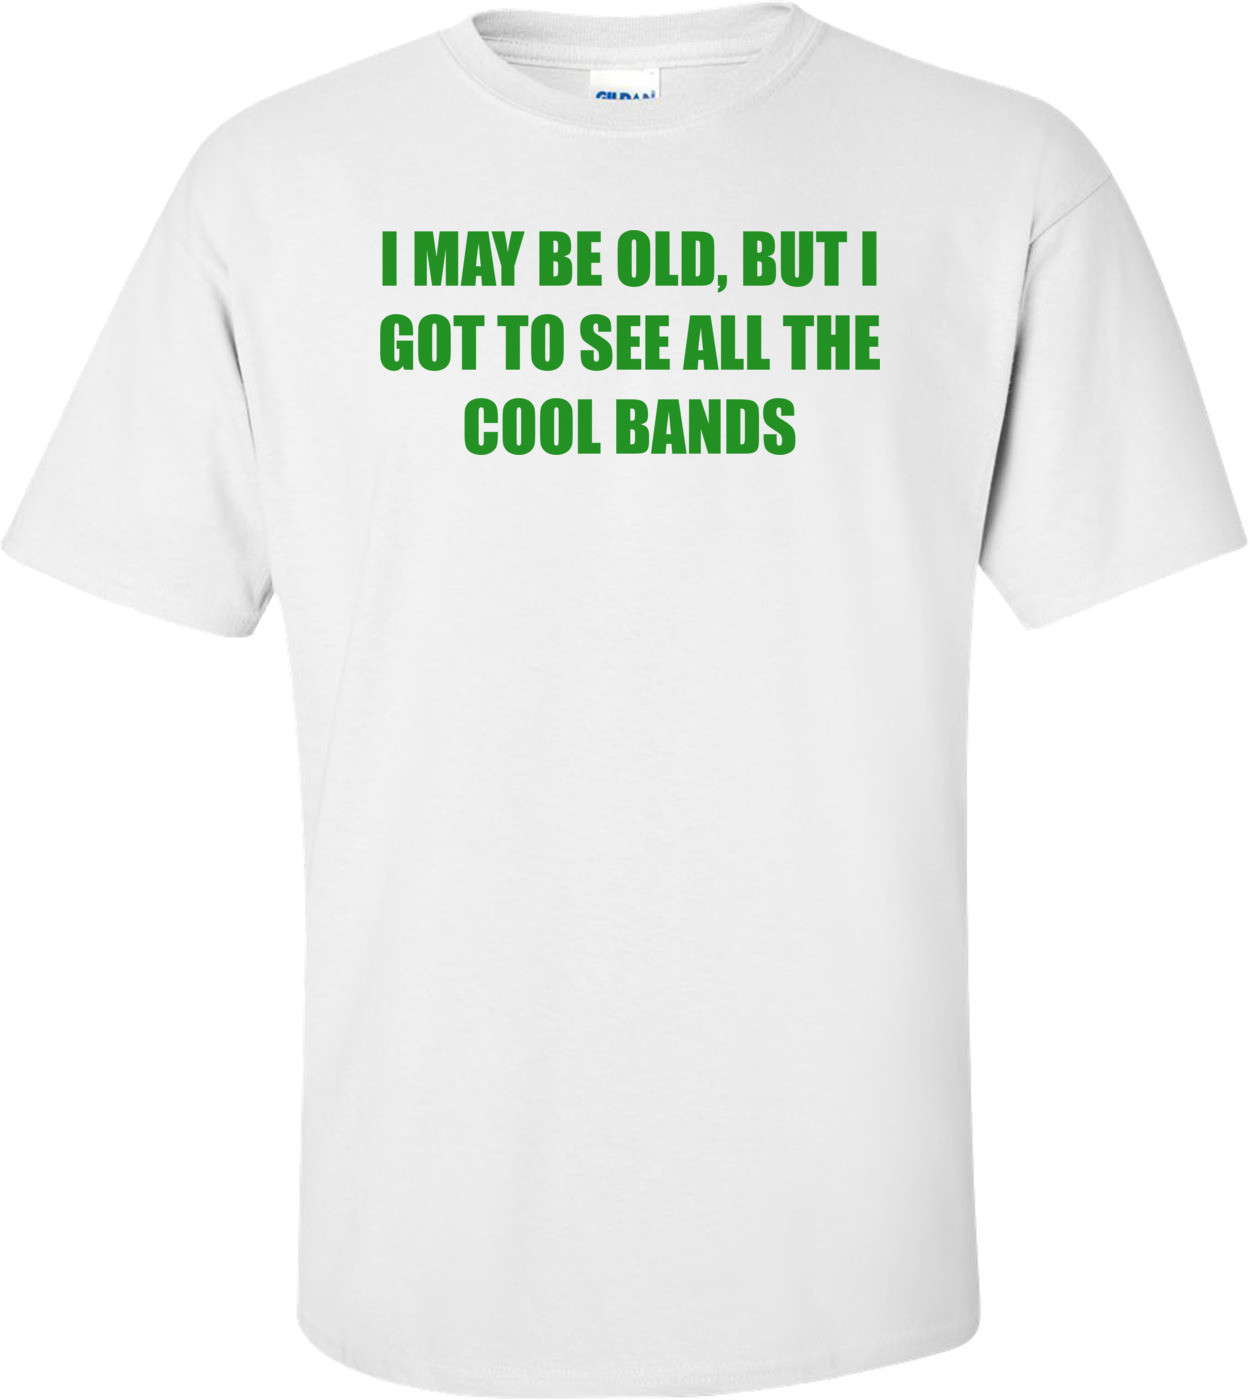 I May Be Old, But I Got To See All The Cool Bands T-Shirt